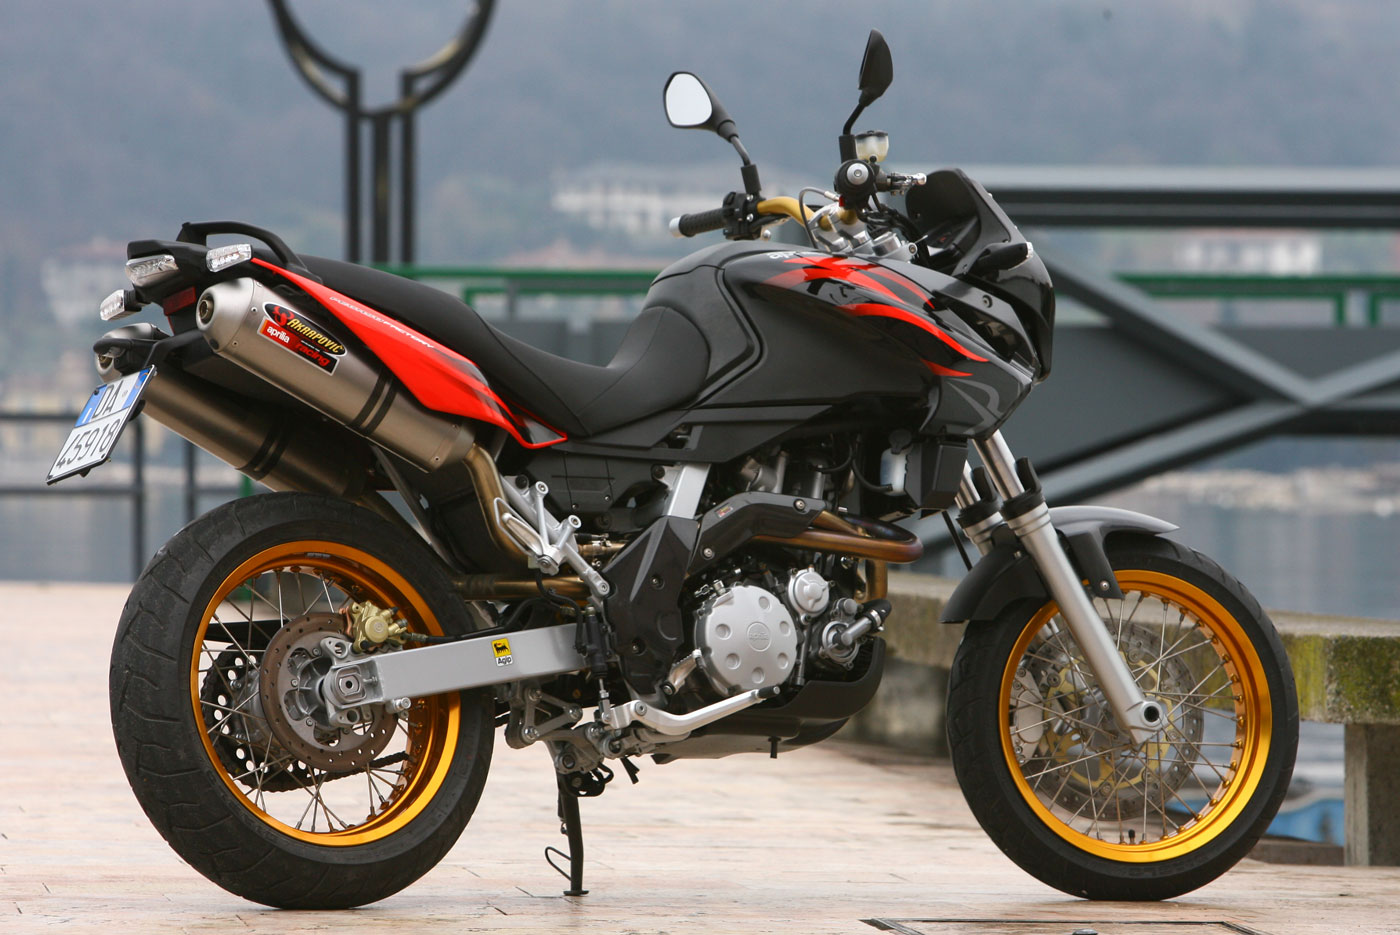 APRILIA PEGASO - Review and photos